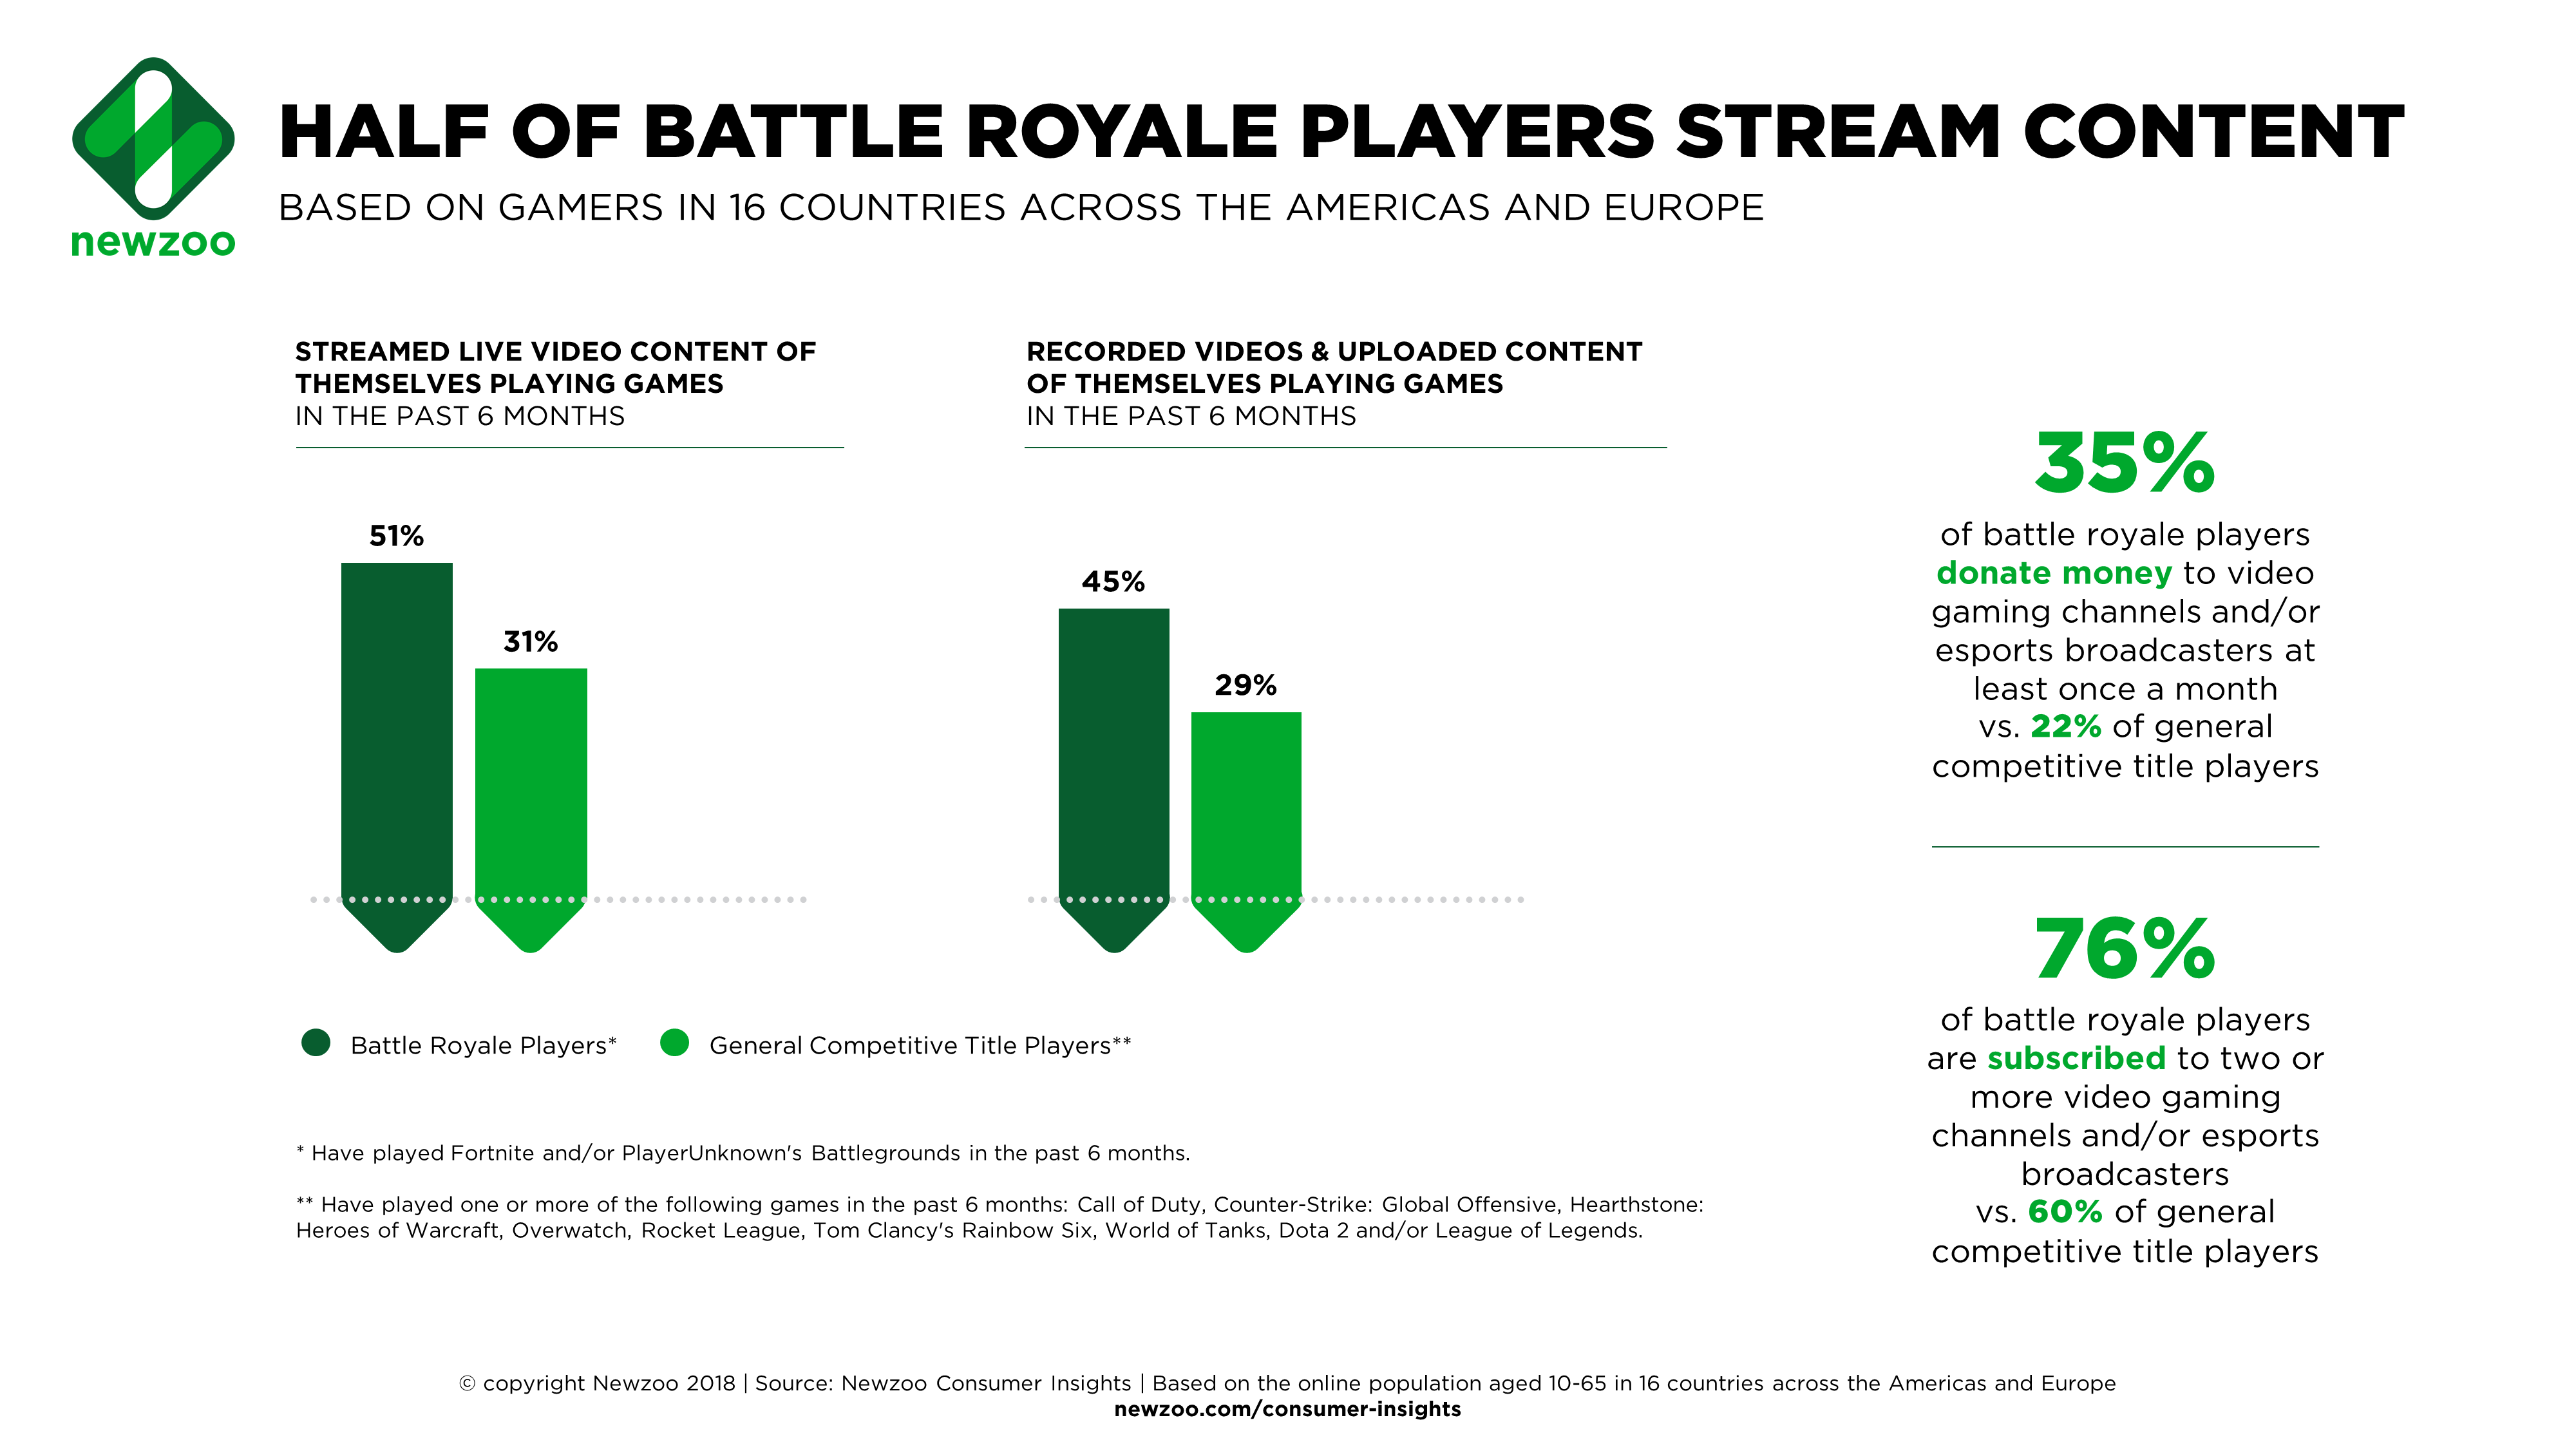 A Profile of the Battle Royale Player and How They Compare